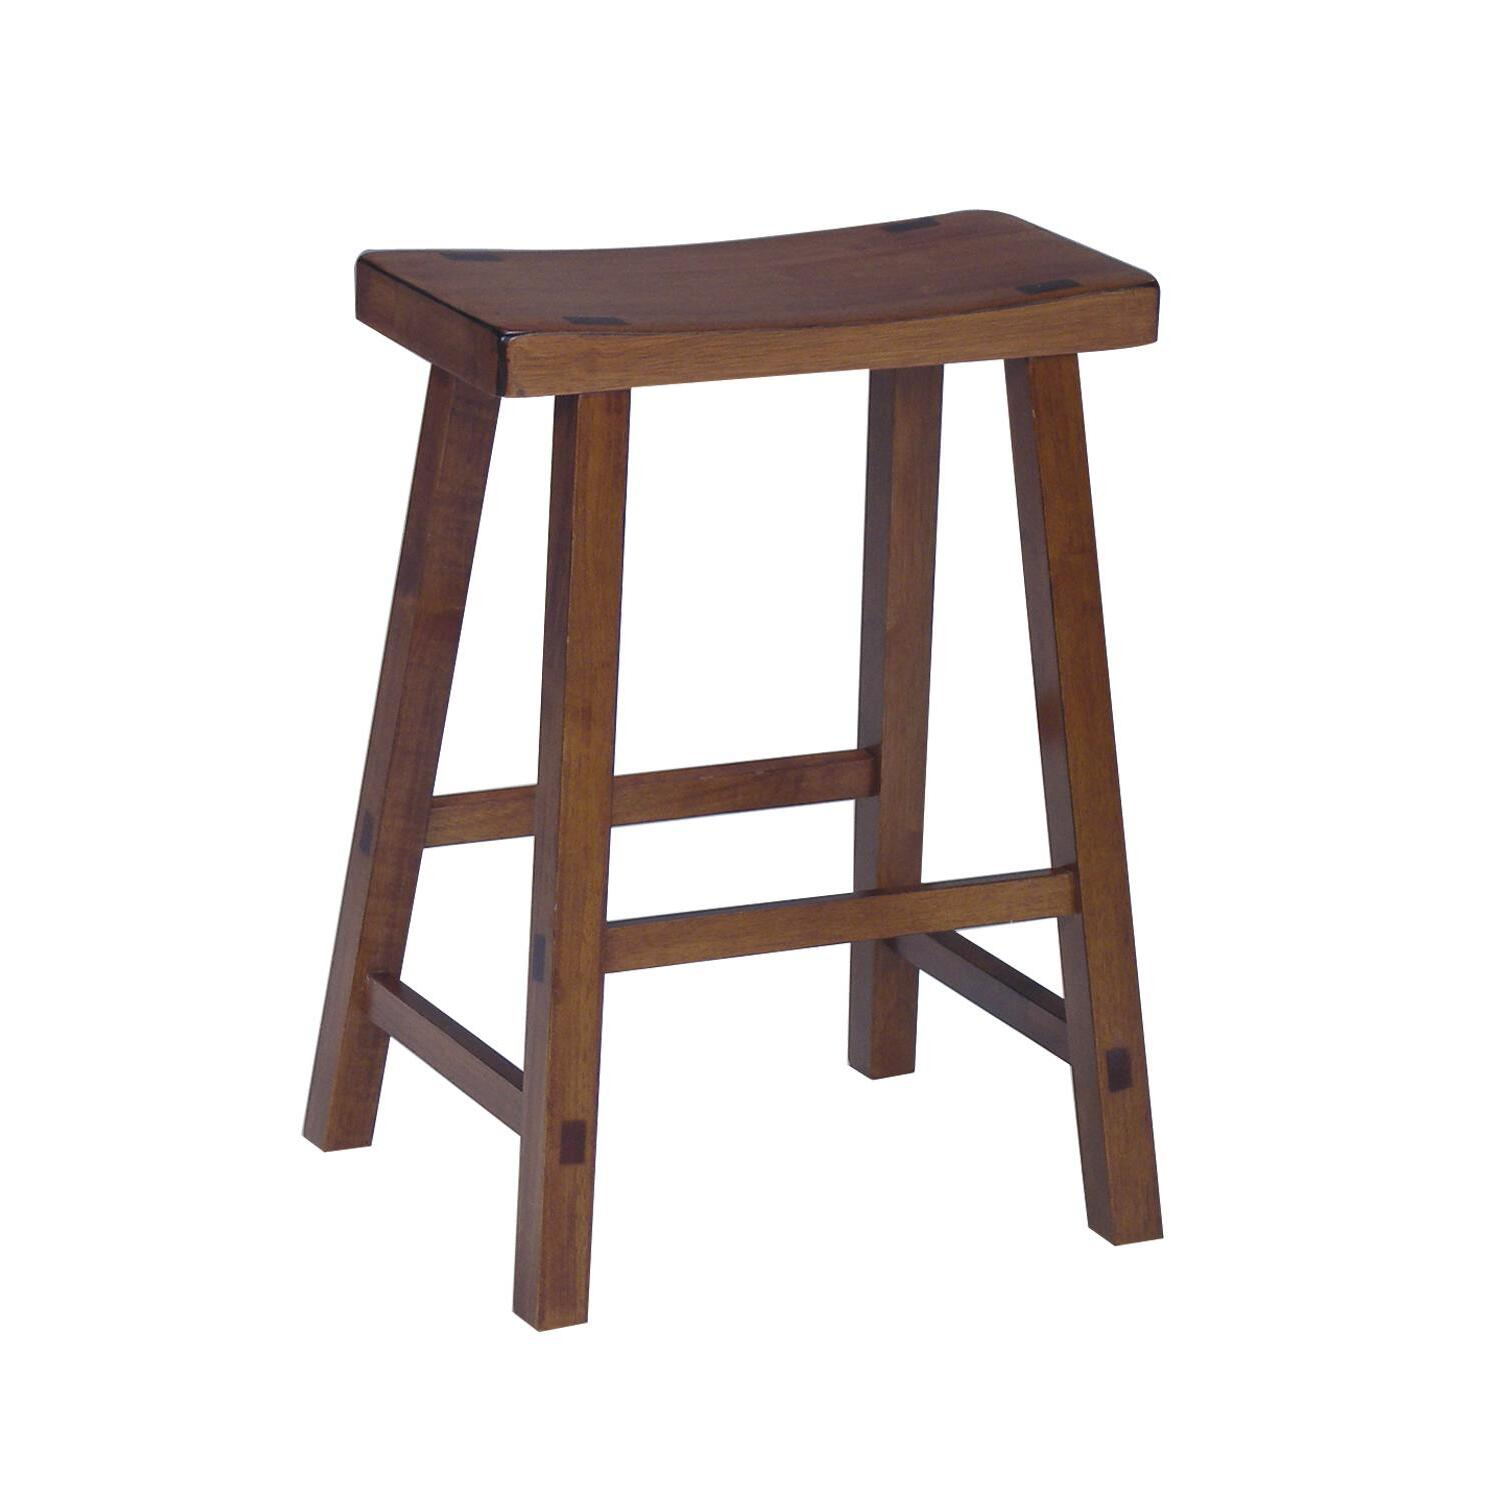 International Concepts Saddle Seat Stool From 51 92 To